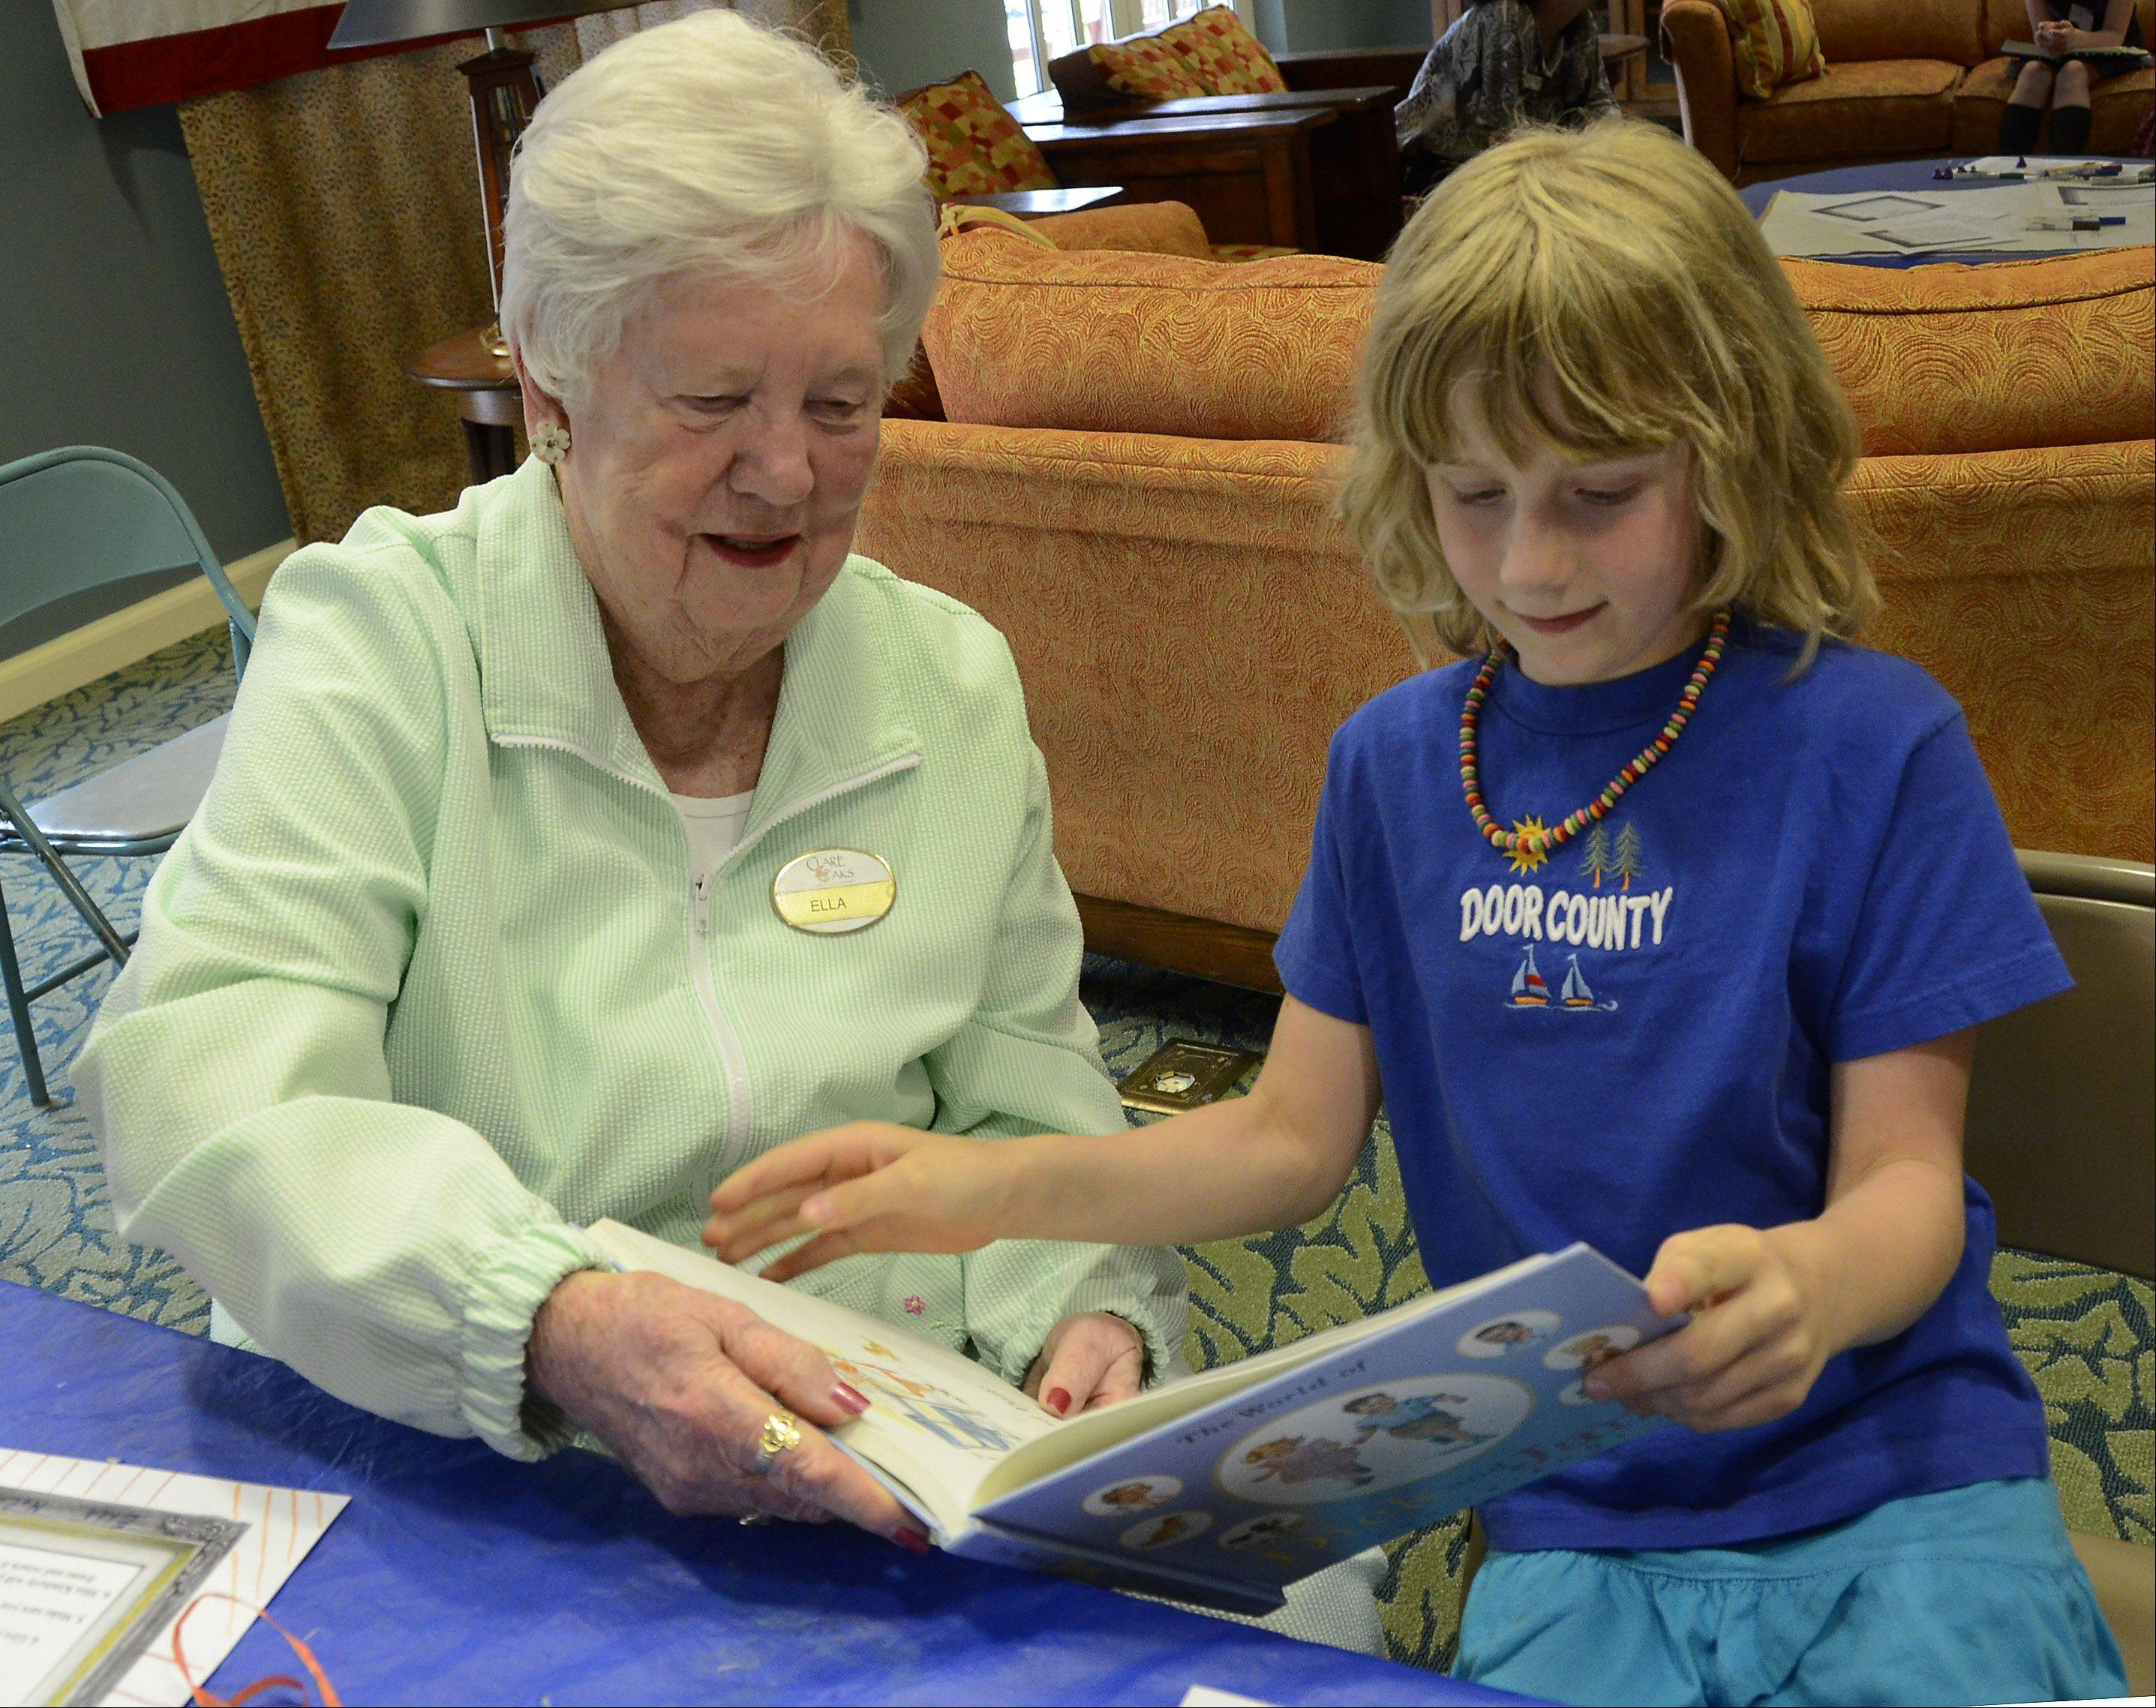 Meeting for the first time, former teacher Ella McCall and Sarah Leardi, 7, look at a book that McCall won at the meet and greet at Clare Oaks Retirement Community. They are participants in the Pages Across Ages intergenerational reading and writing exchange through the Bartlett Public Library.